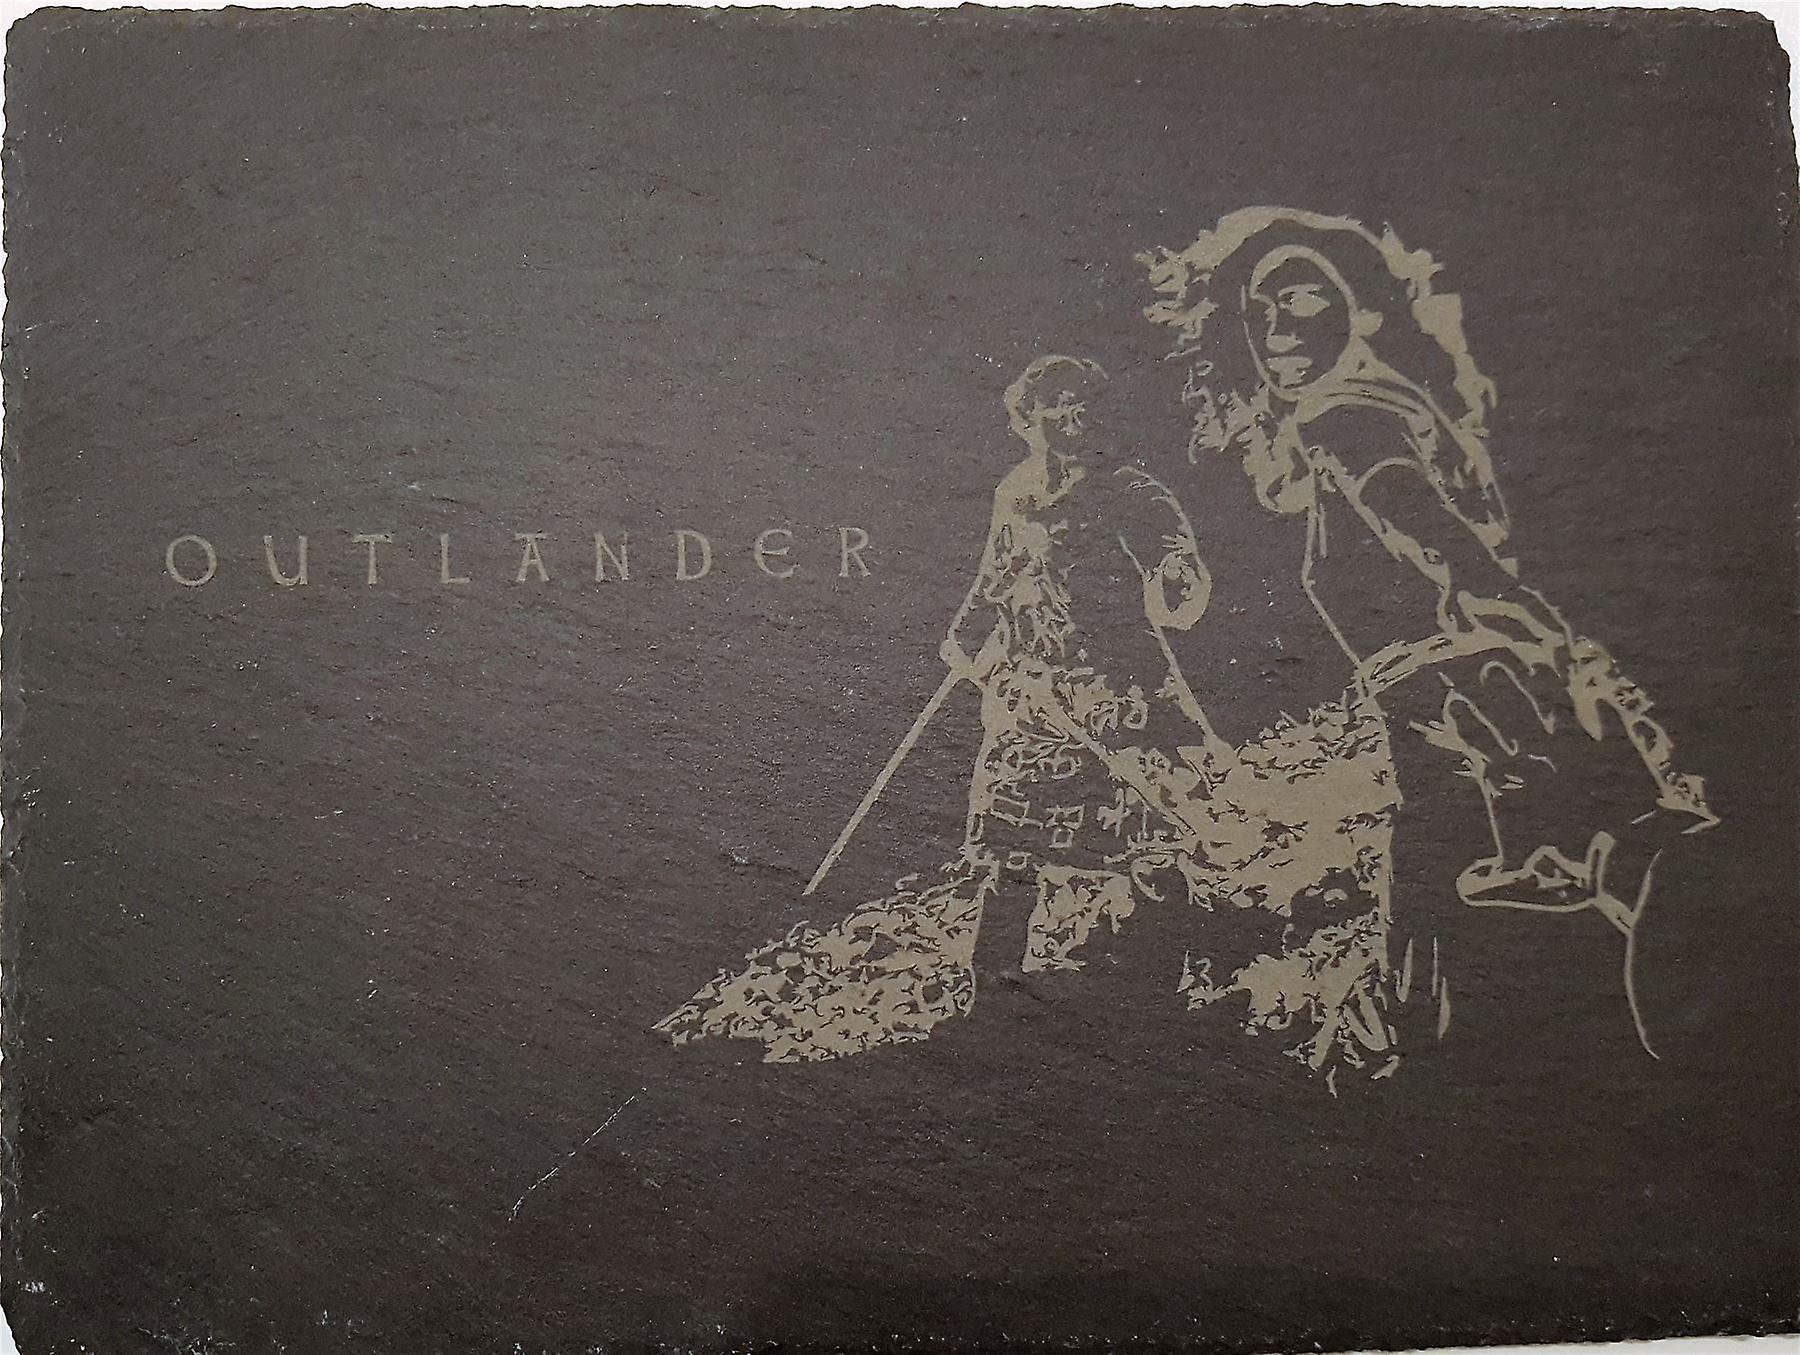 Graham Wishart Laser Etchings Oblong Slate Large with Stand Outlander